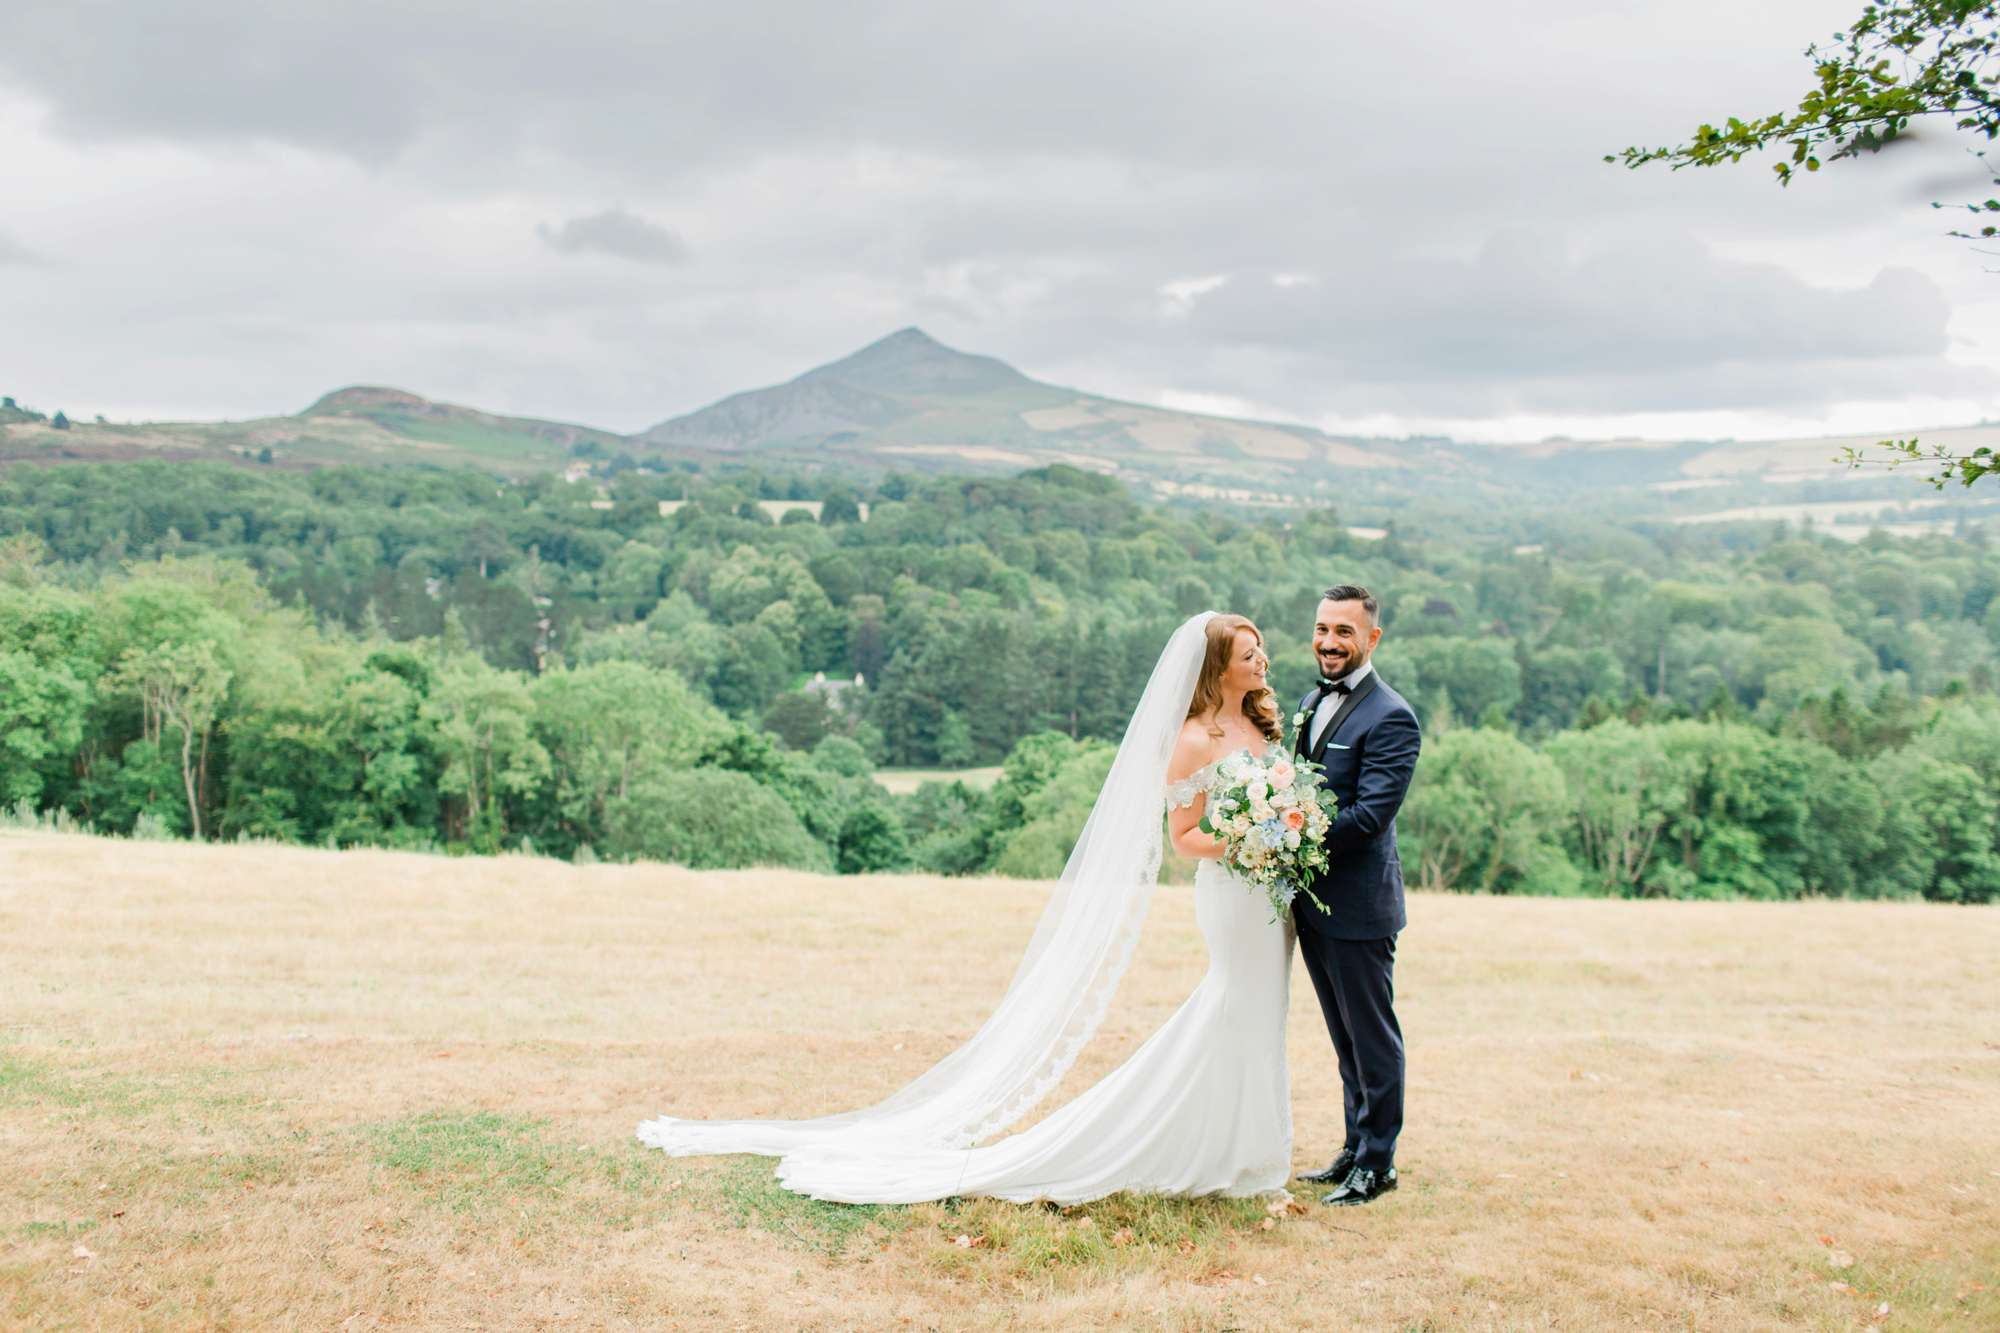 powerscourt-wedding-kiera-pico-story-of-eve-peter-carvill_1674